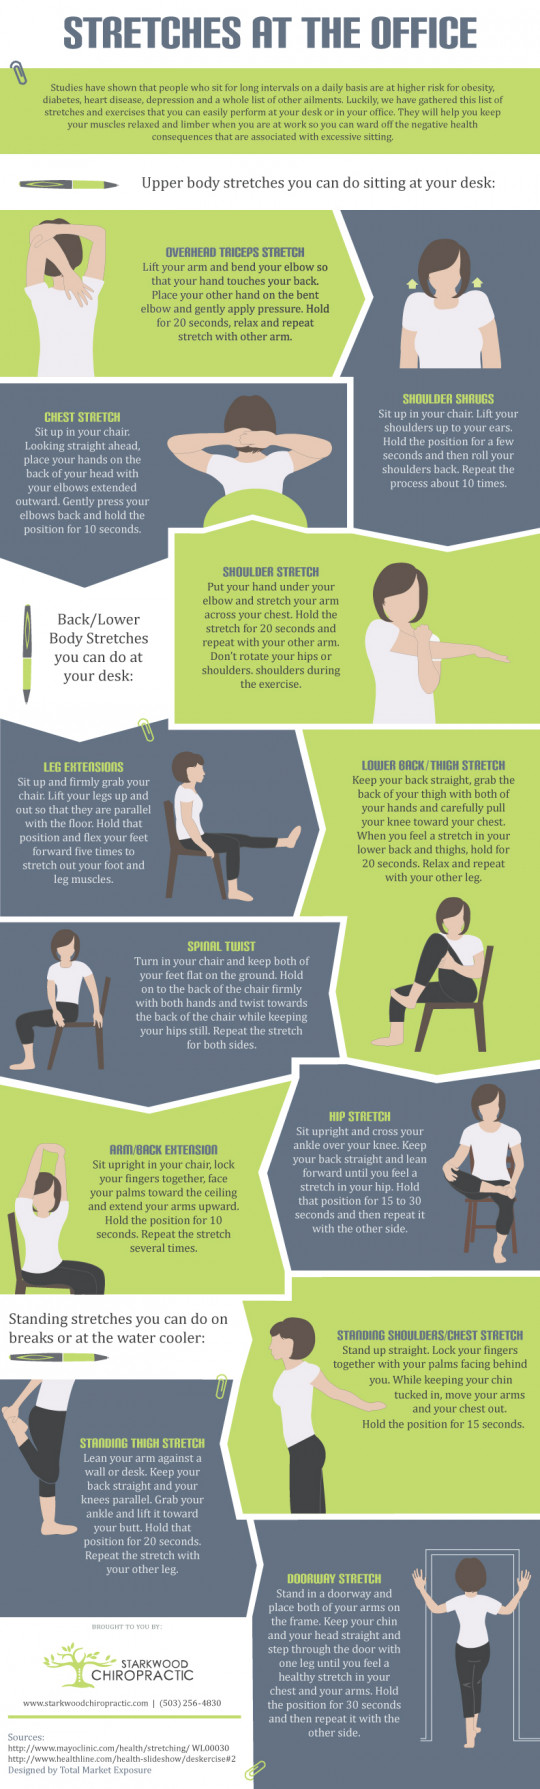 12 Stretch Exercises You Can Do At Your Desk Infographic